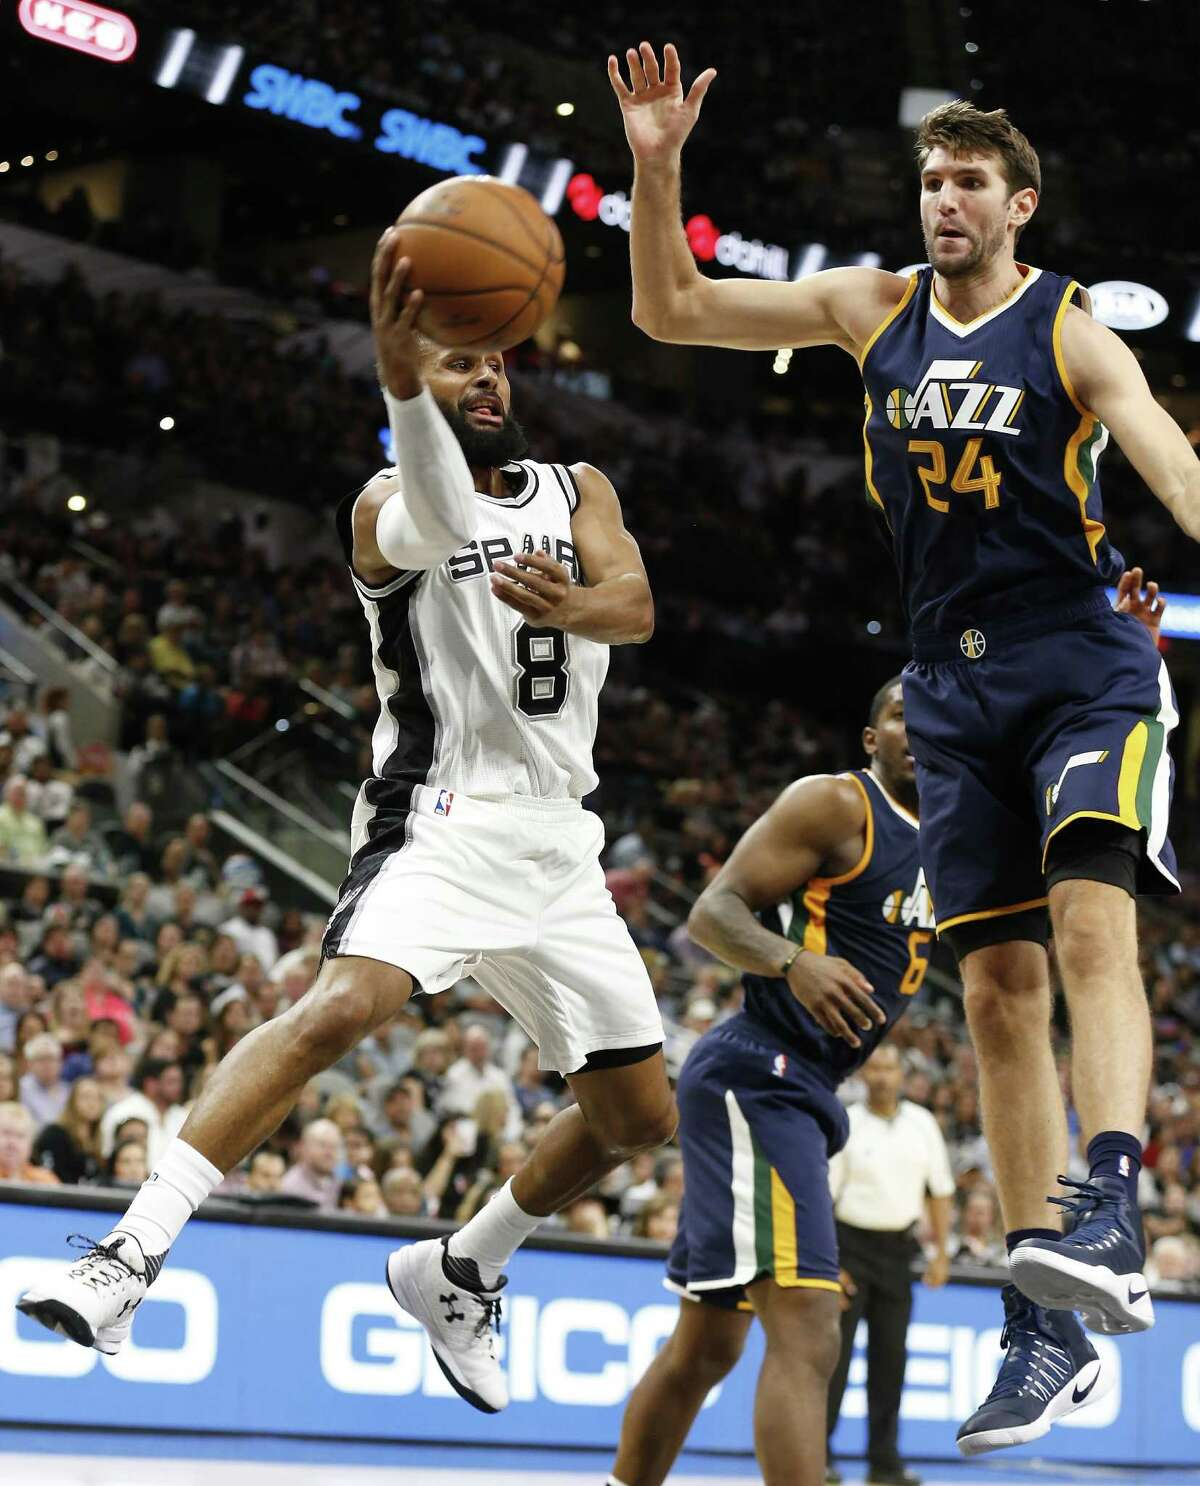 Spurs' Patty Mills makes a pass against Utah Jazz's Jeff Withey (24) at the AT&T Center on Nov. 1, 2016.